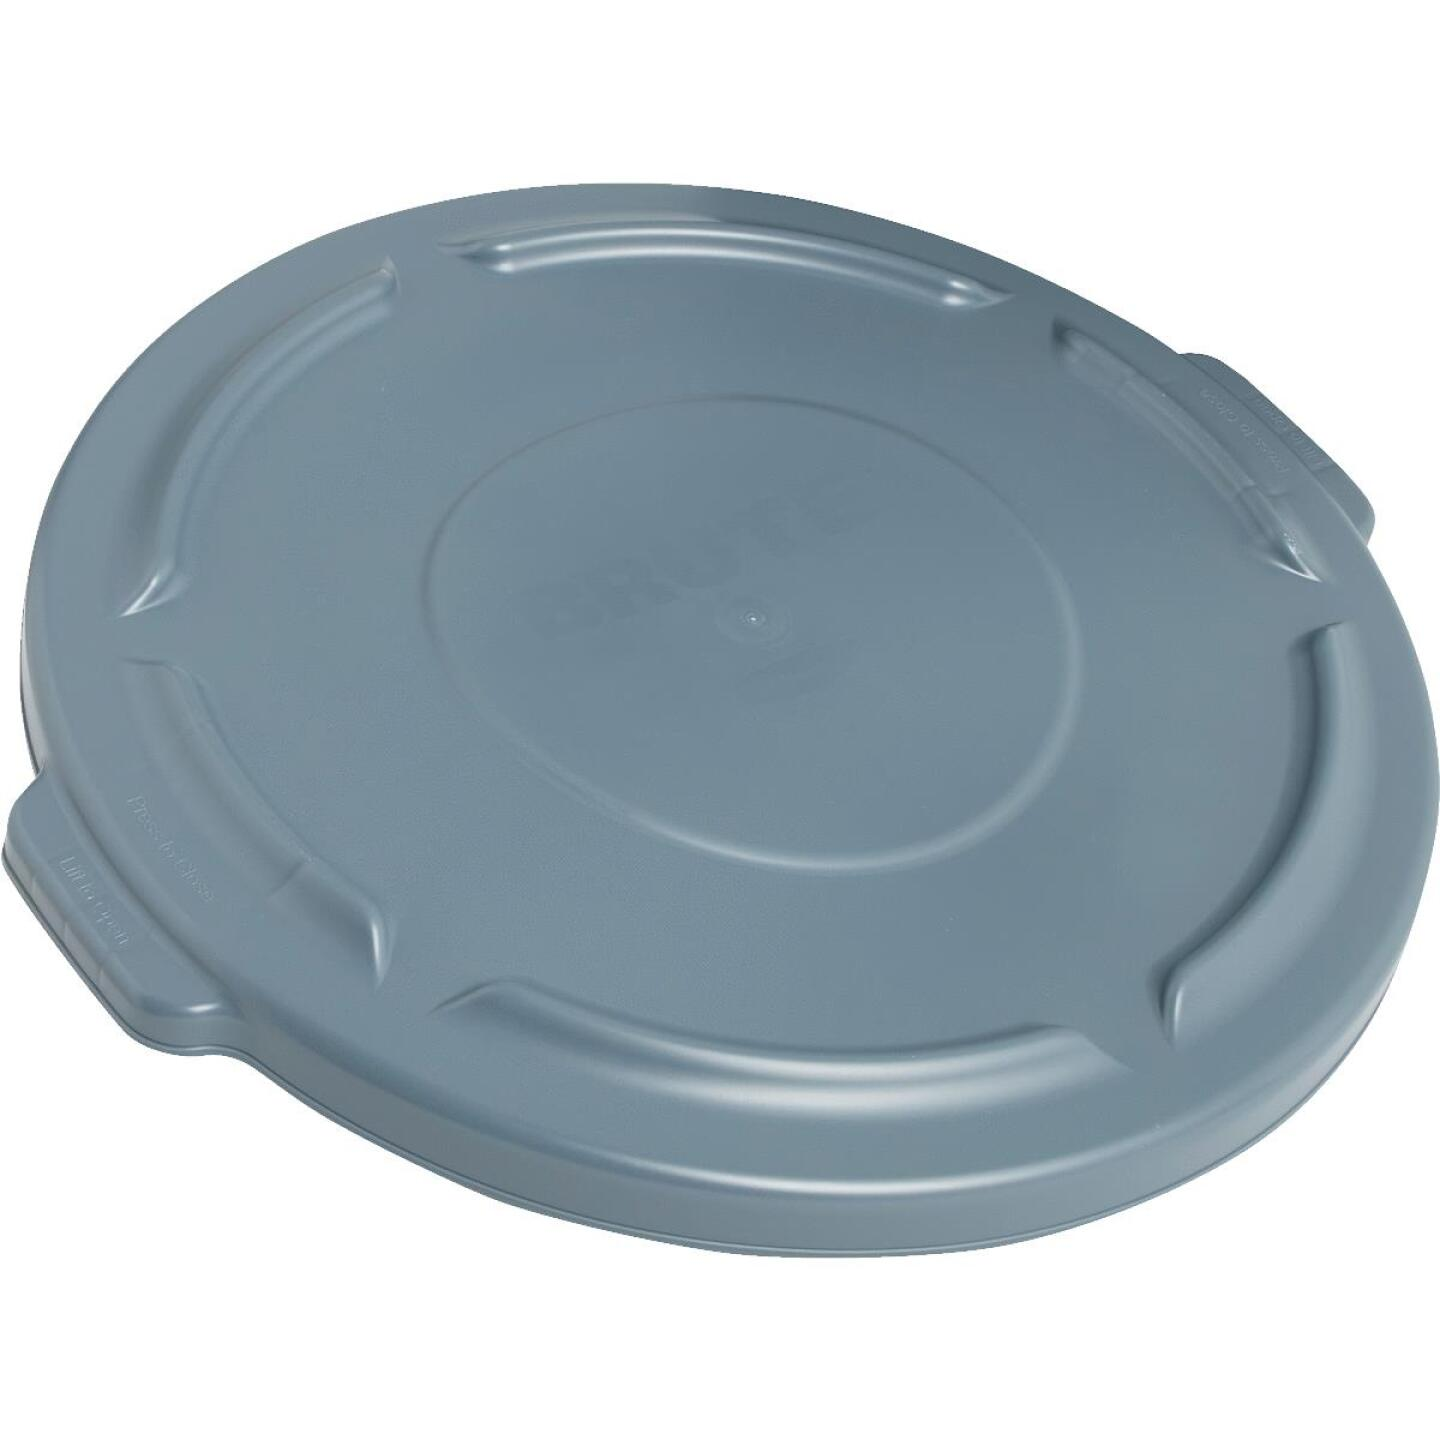 Rubbermaid Commercial Brute Gray Trash Can Lid for 32 Gal. Trash Can Image 1